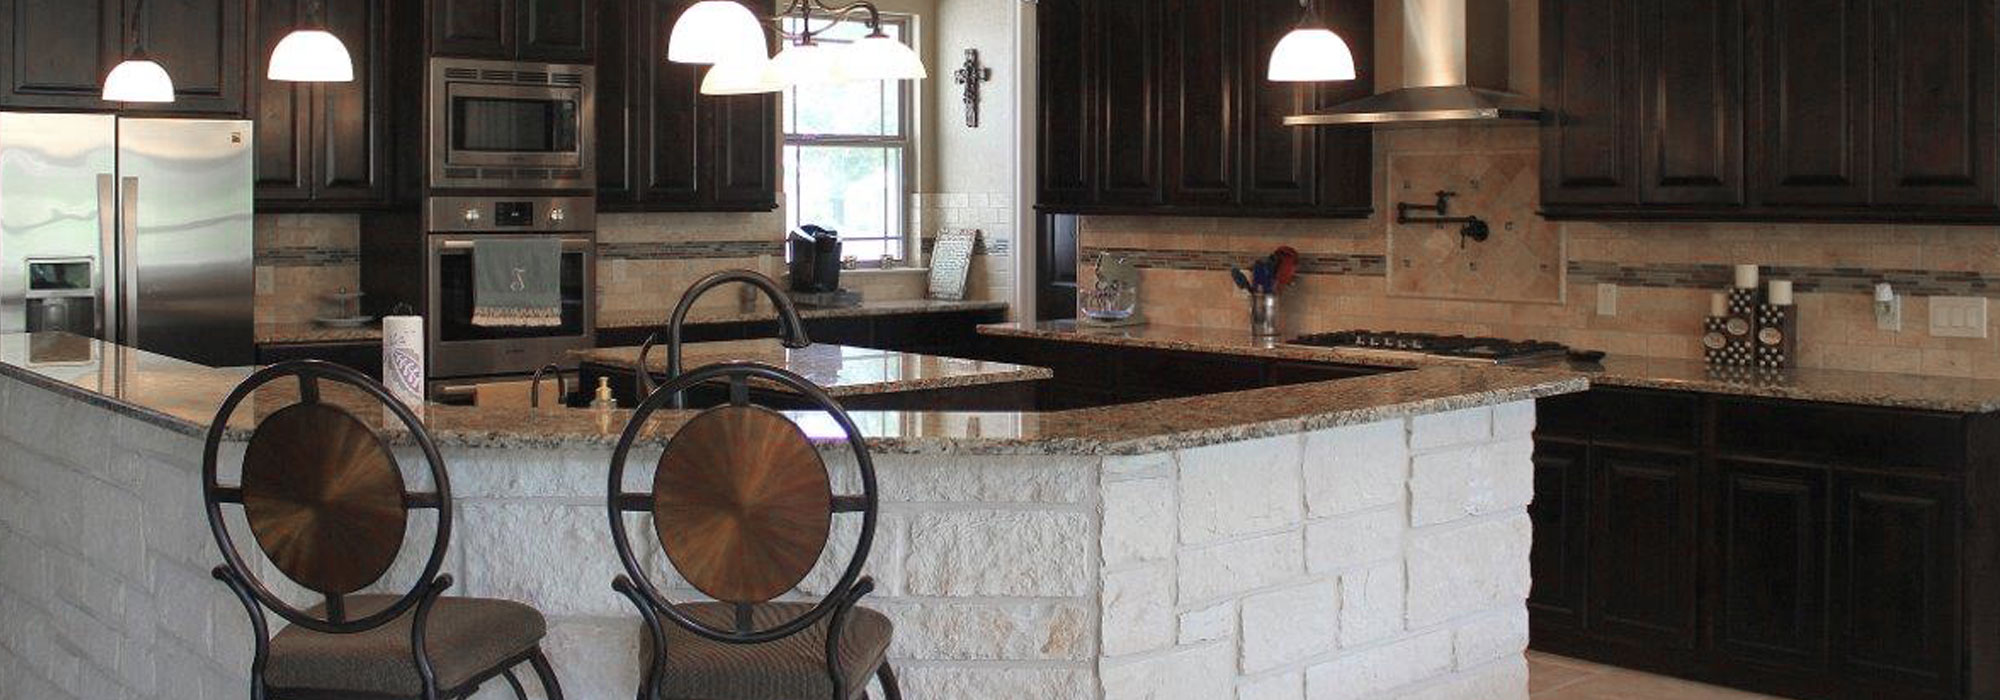 Custom Home Builder Wilson County TX